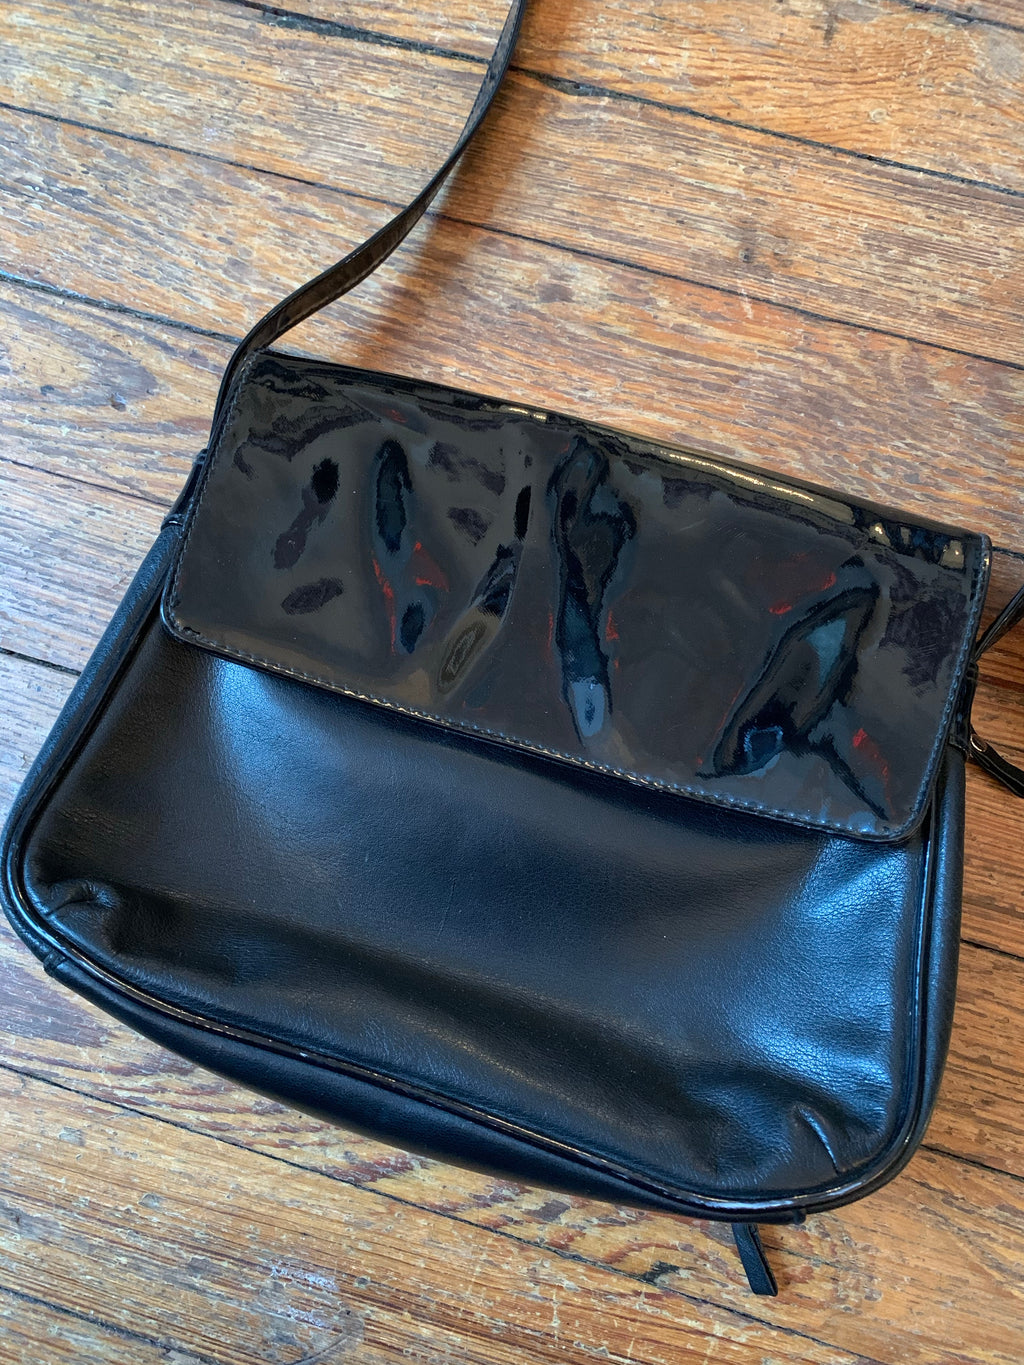 Vintage Black Leather and Patent Leather Adjustable Bag